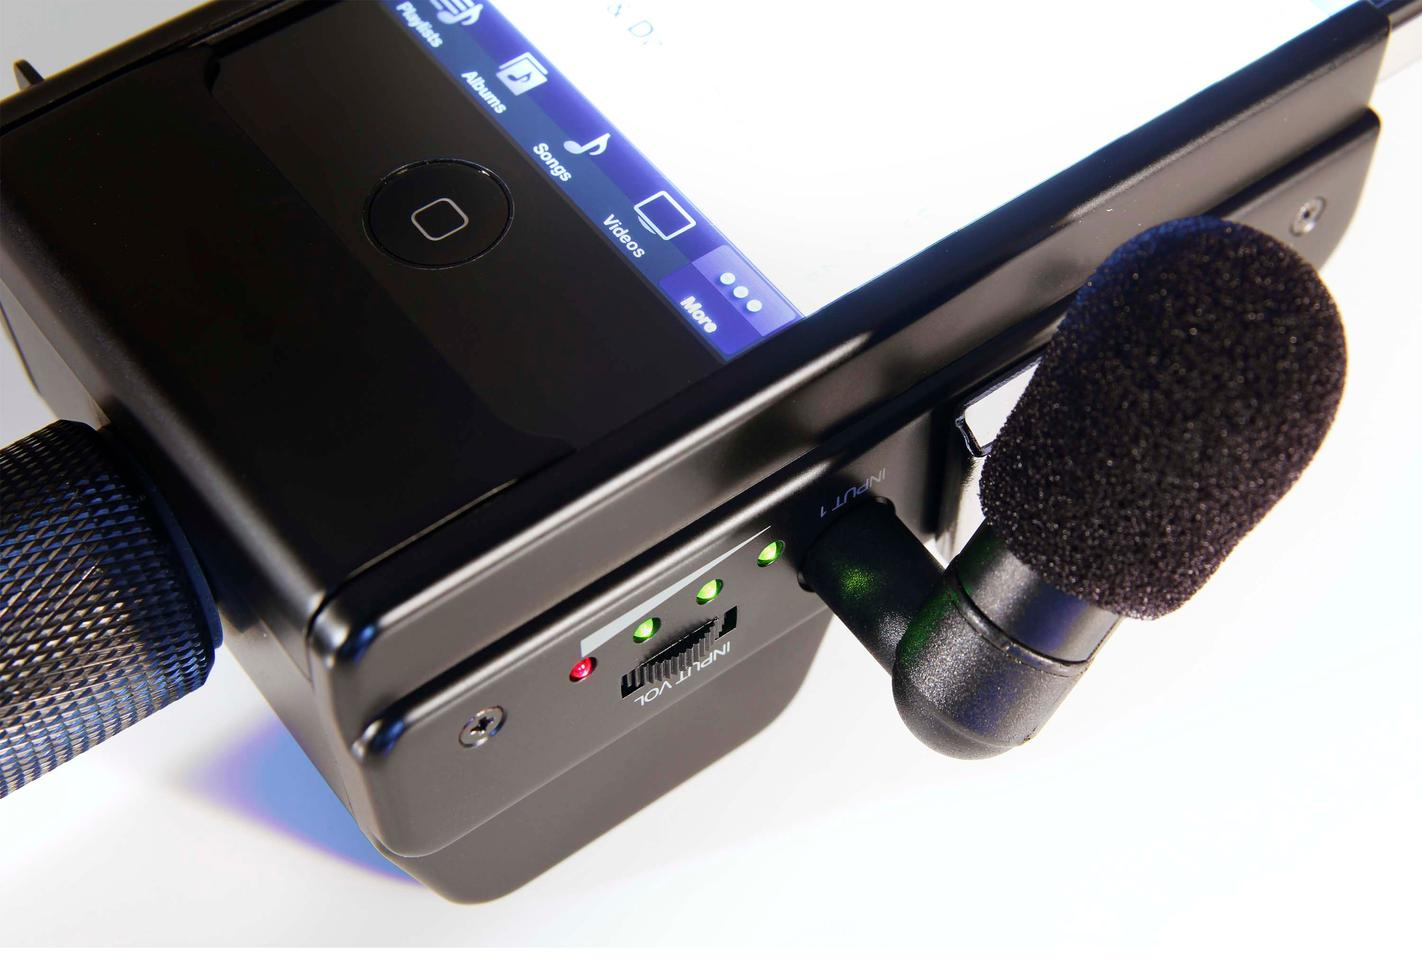 The Fostex AR-4i audio interface for iPhone 4 has an LED VU meter, and a thumbwheel control for adjusting the audio level